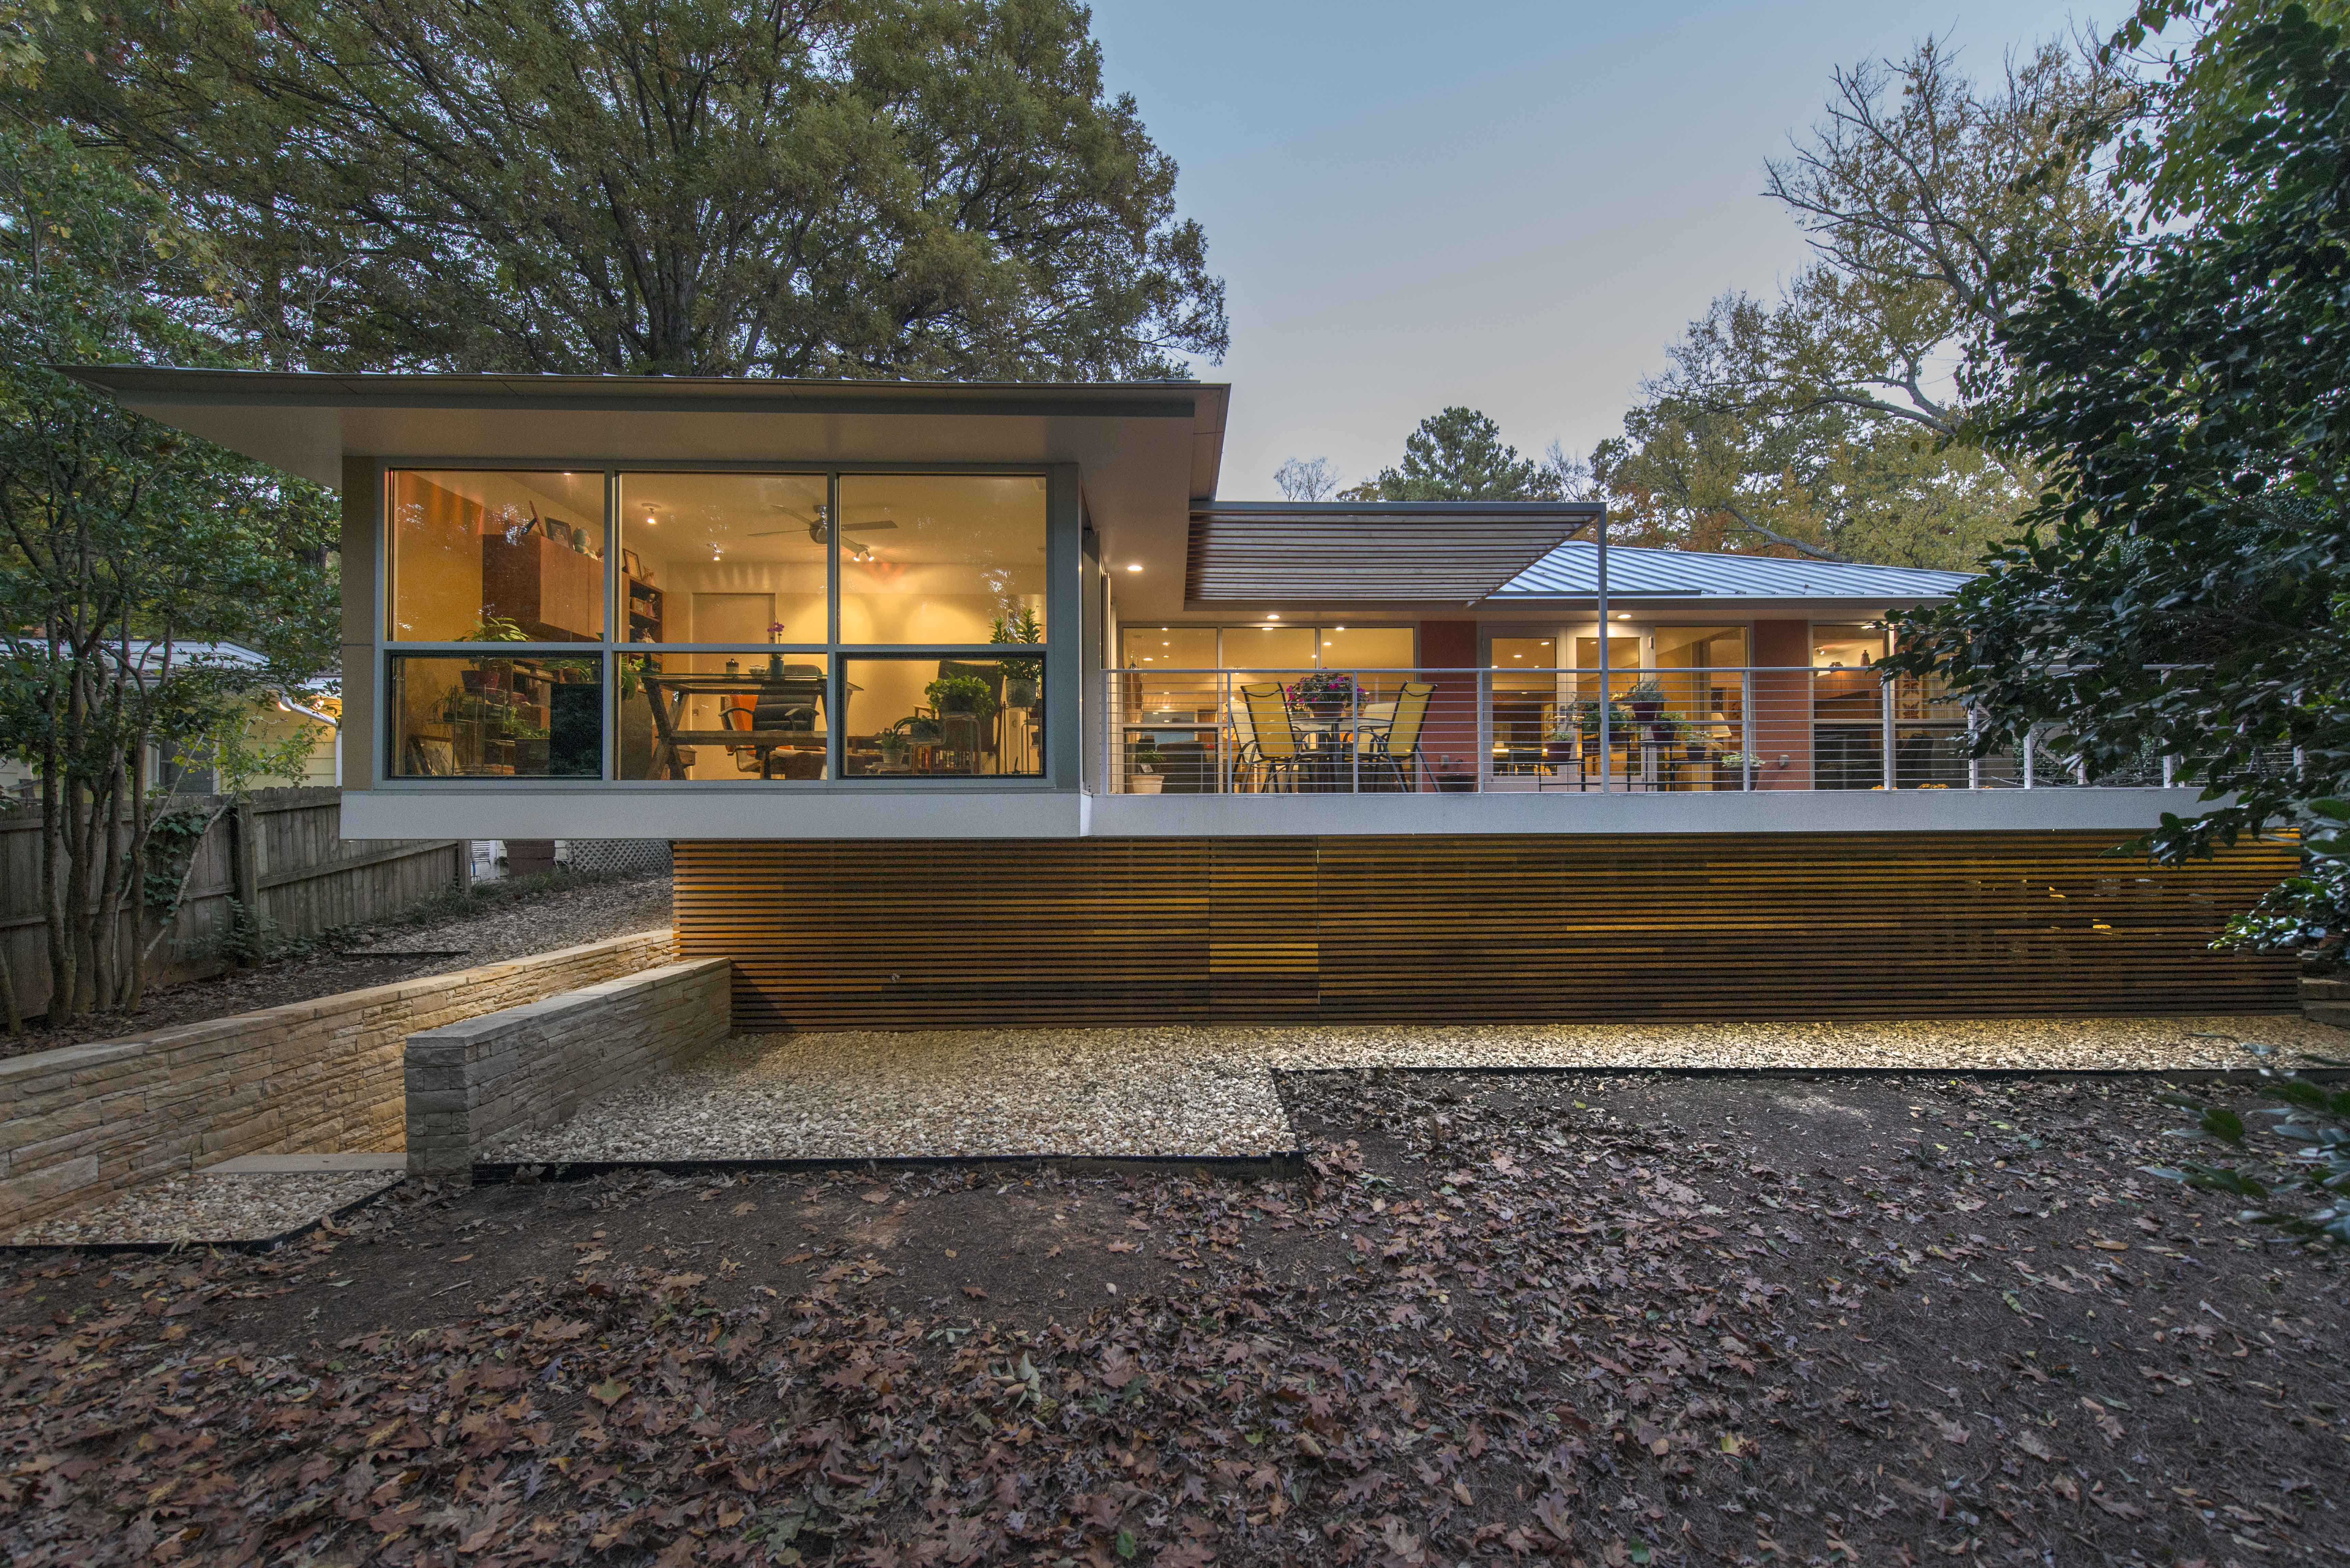 Ranch style redux residential architect robert cain for Residential architects atlanta ga